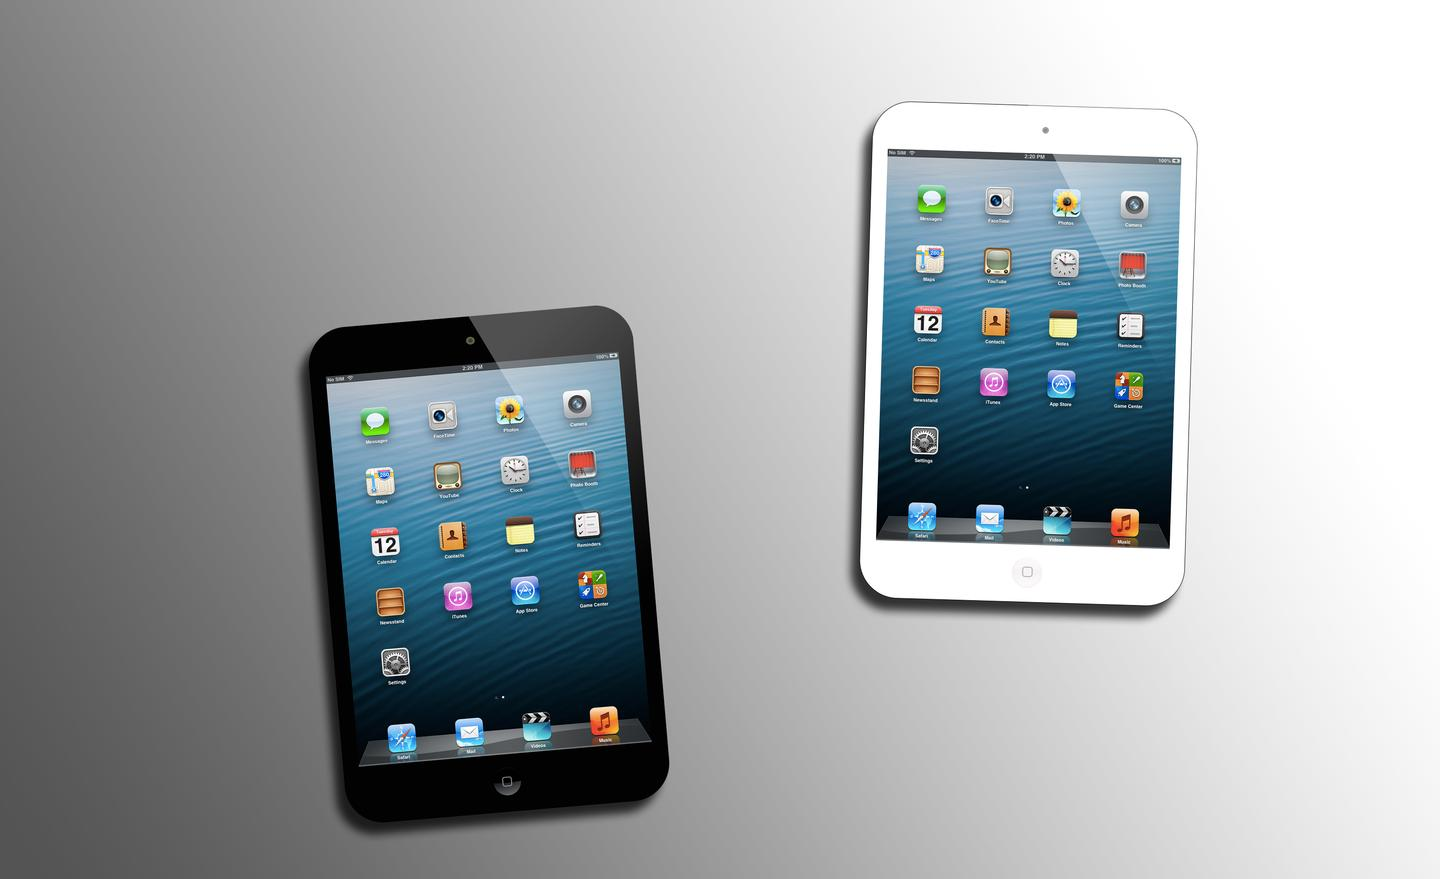 We'll likely see black and white models of the iPad mini